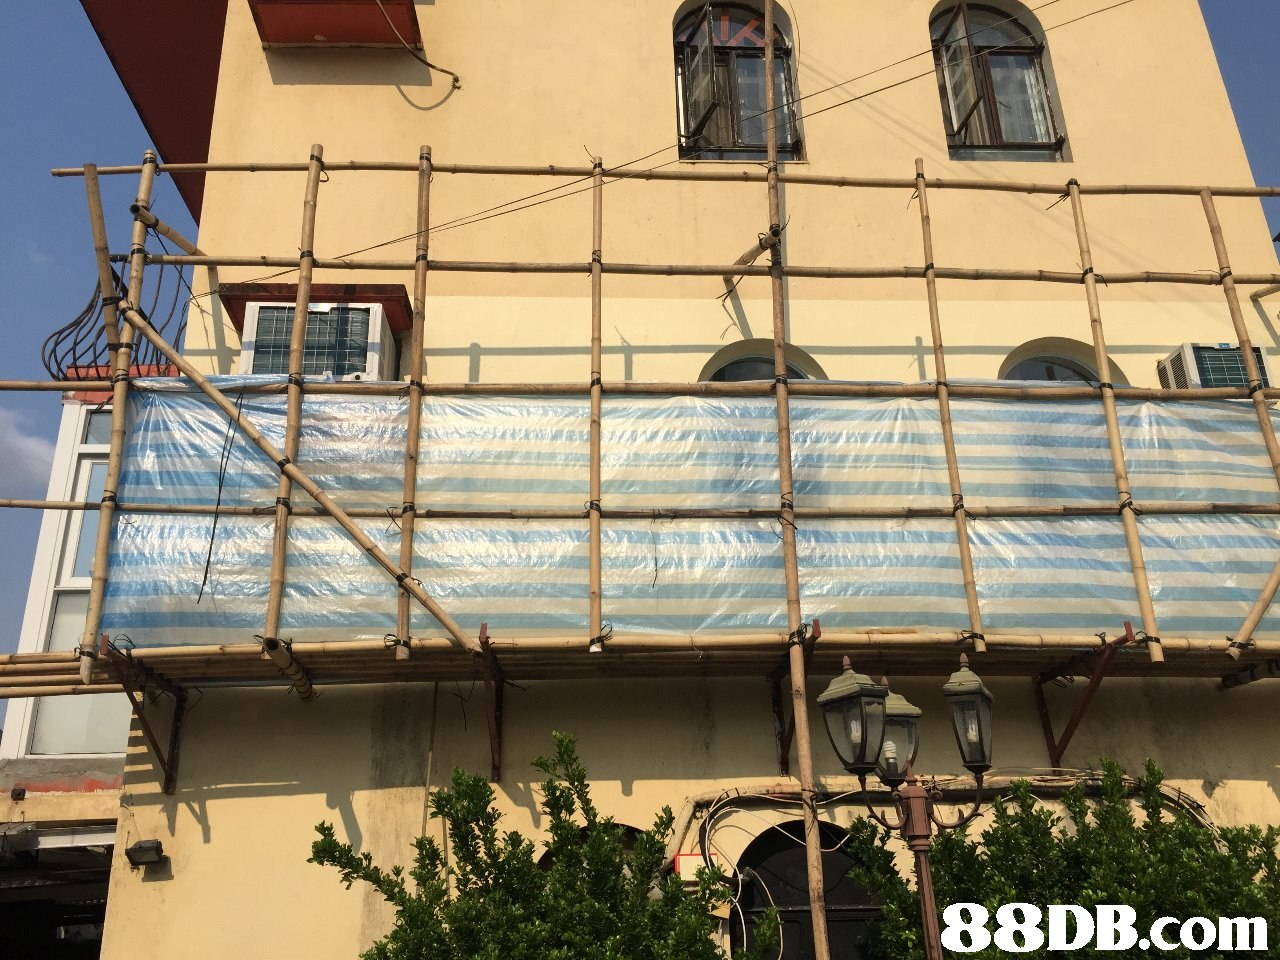 building,residential area,facade,balcony,roof